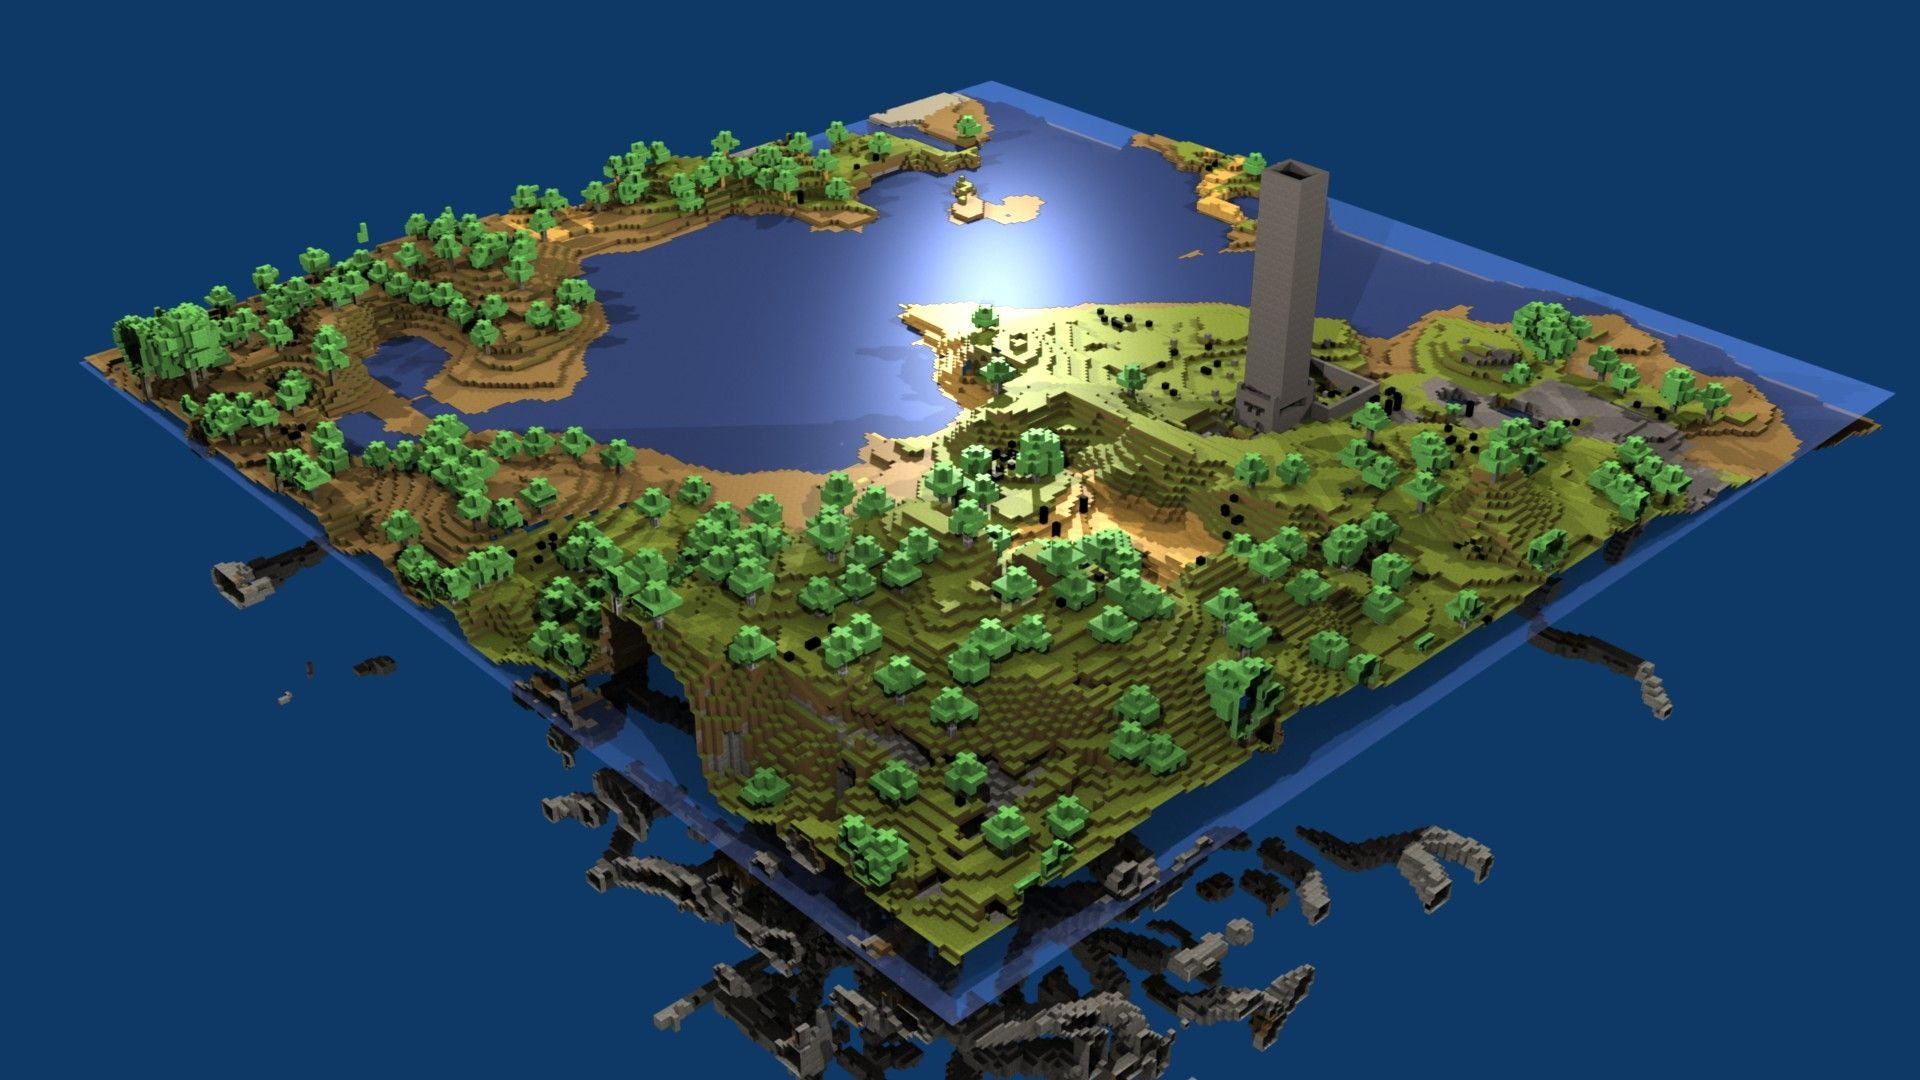 Amazing Minecraft Wallpapers 1366x768 Backgrounds 36